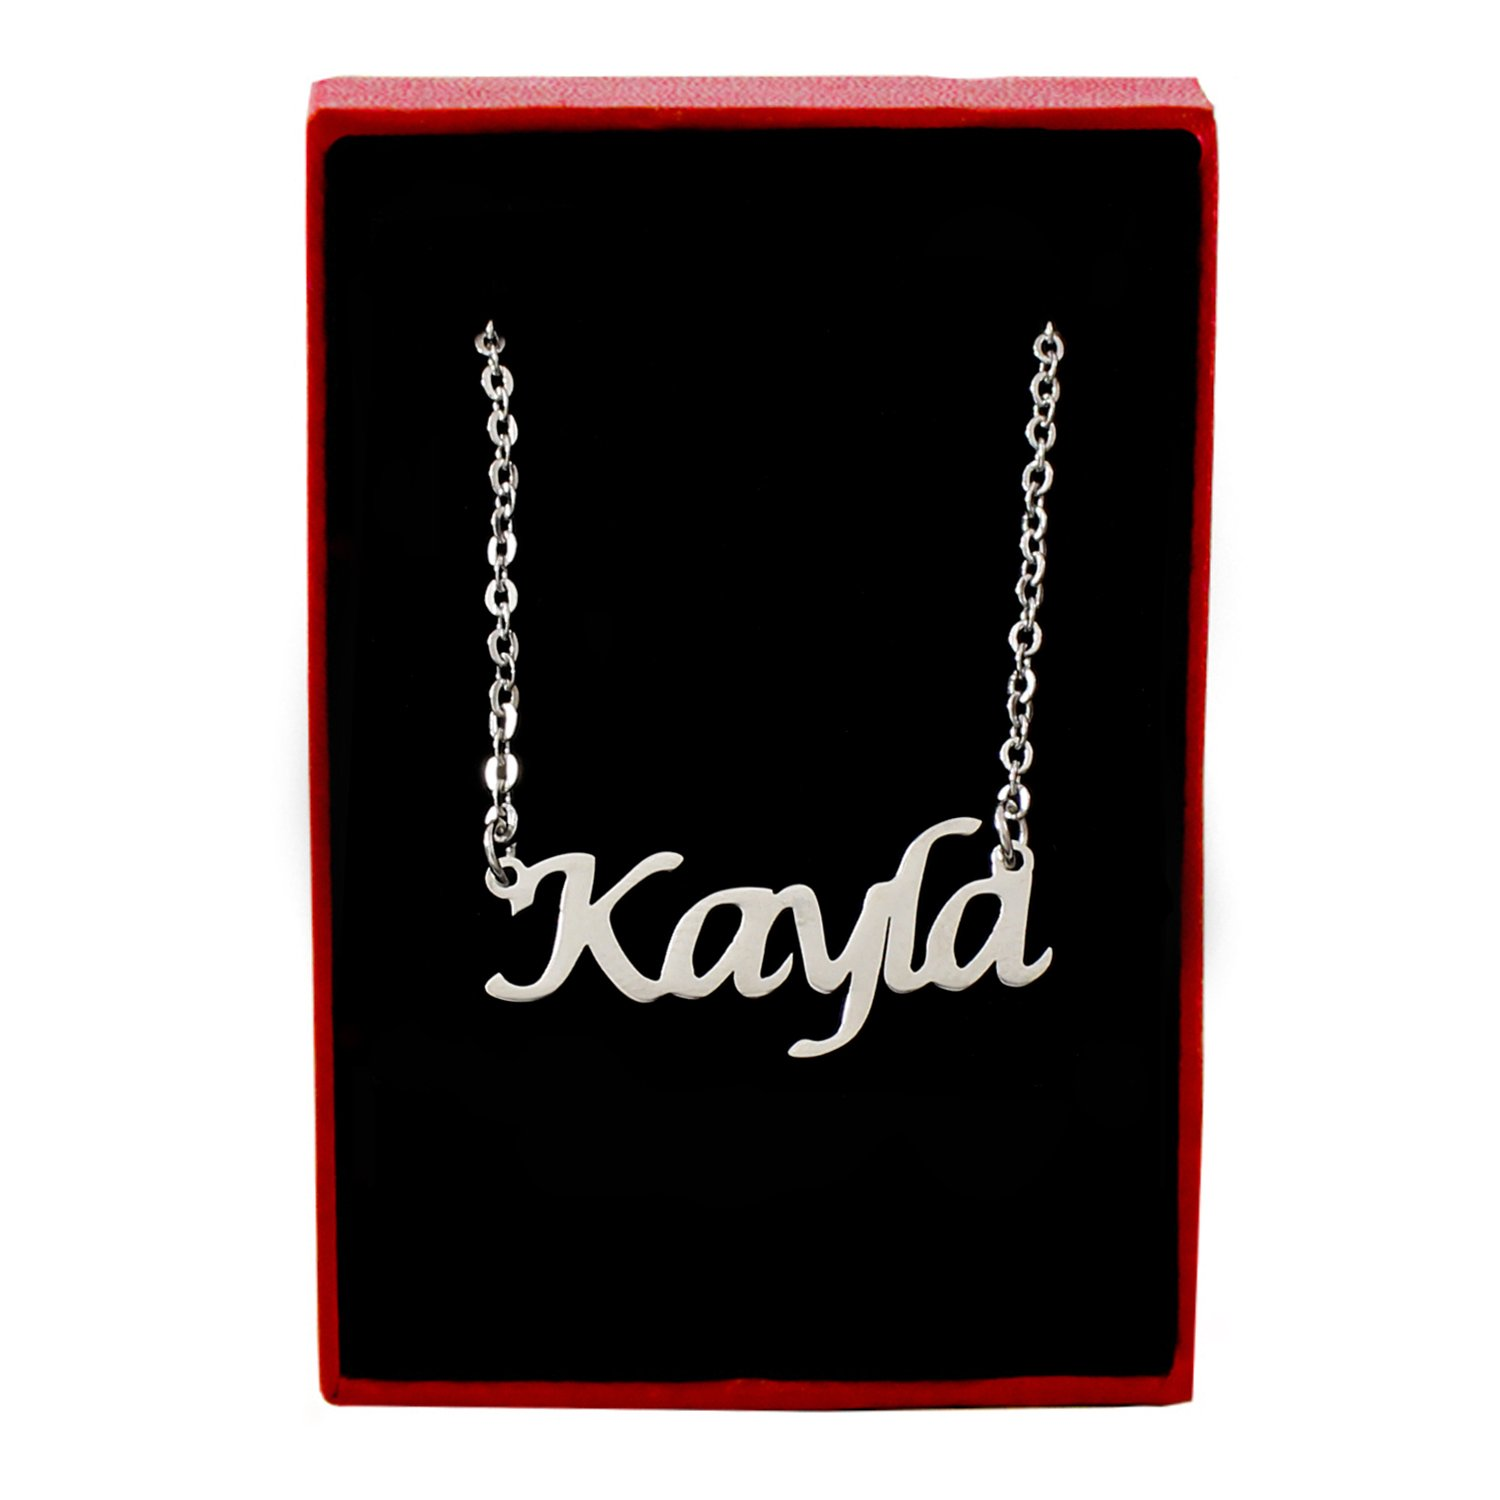 Kayla Silver Tone Name Necklace